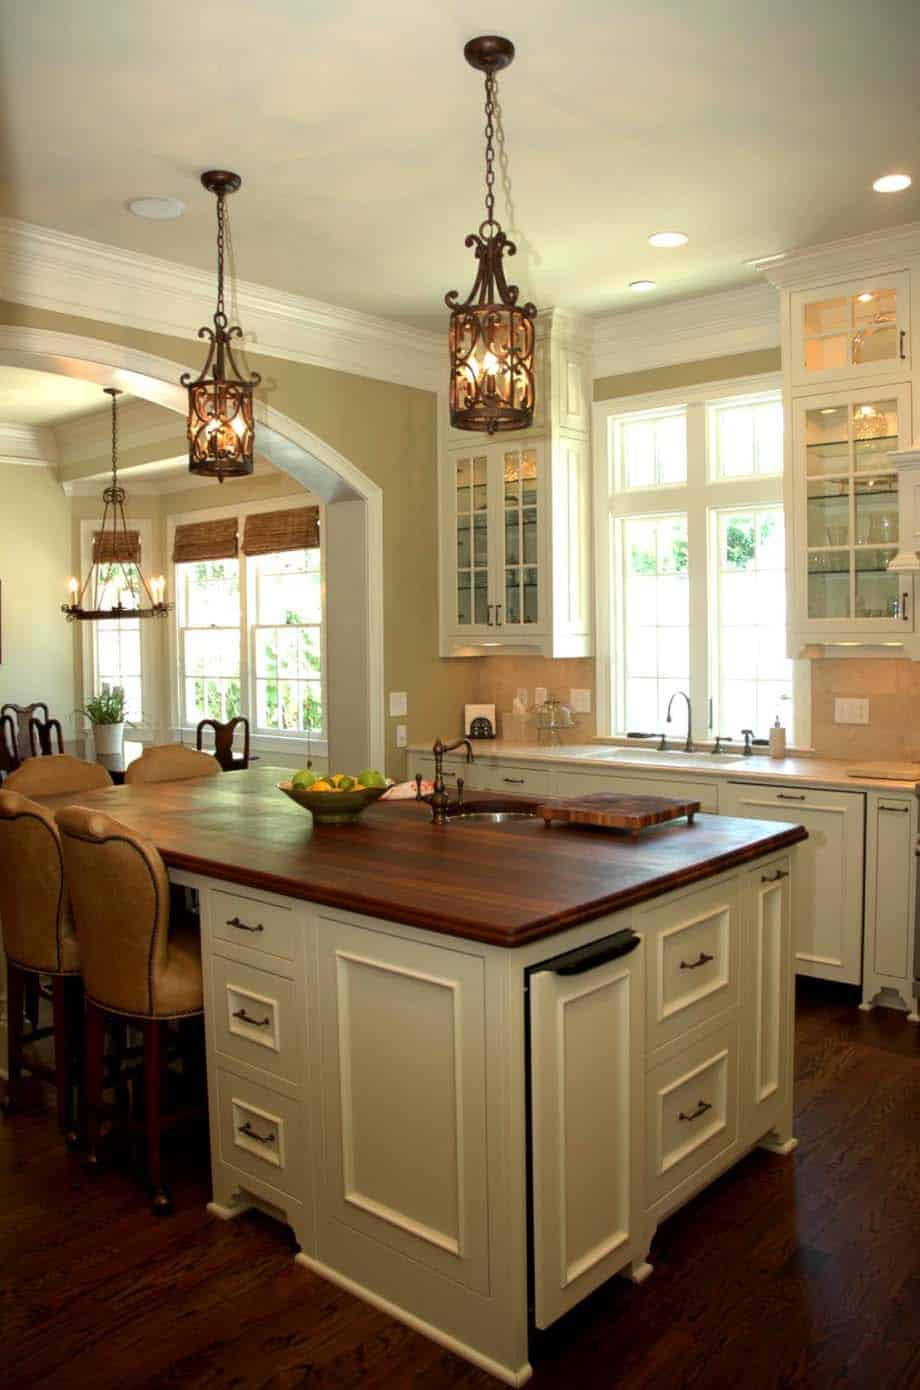 25 Dream Kitchen Islands That Are Utterly Drool Worthy